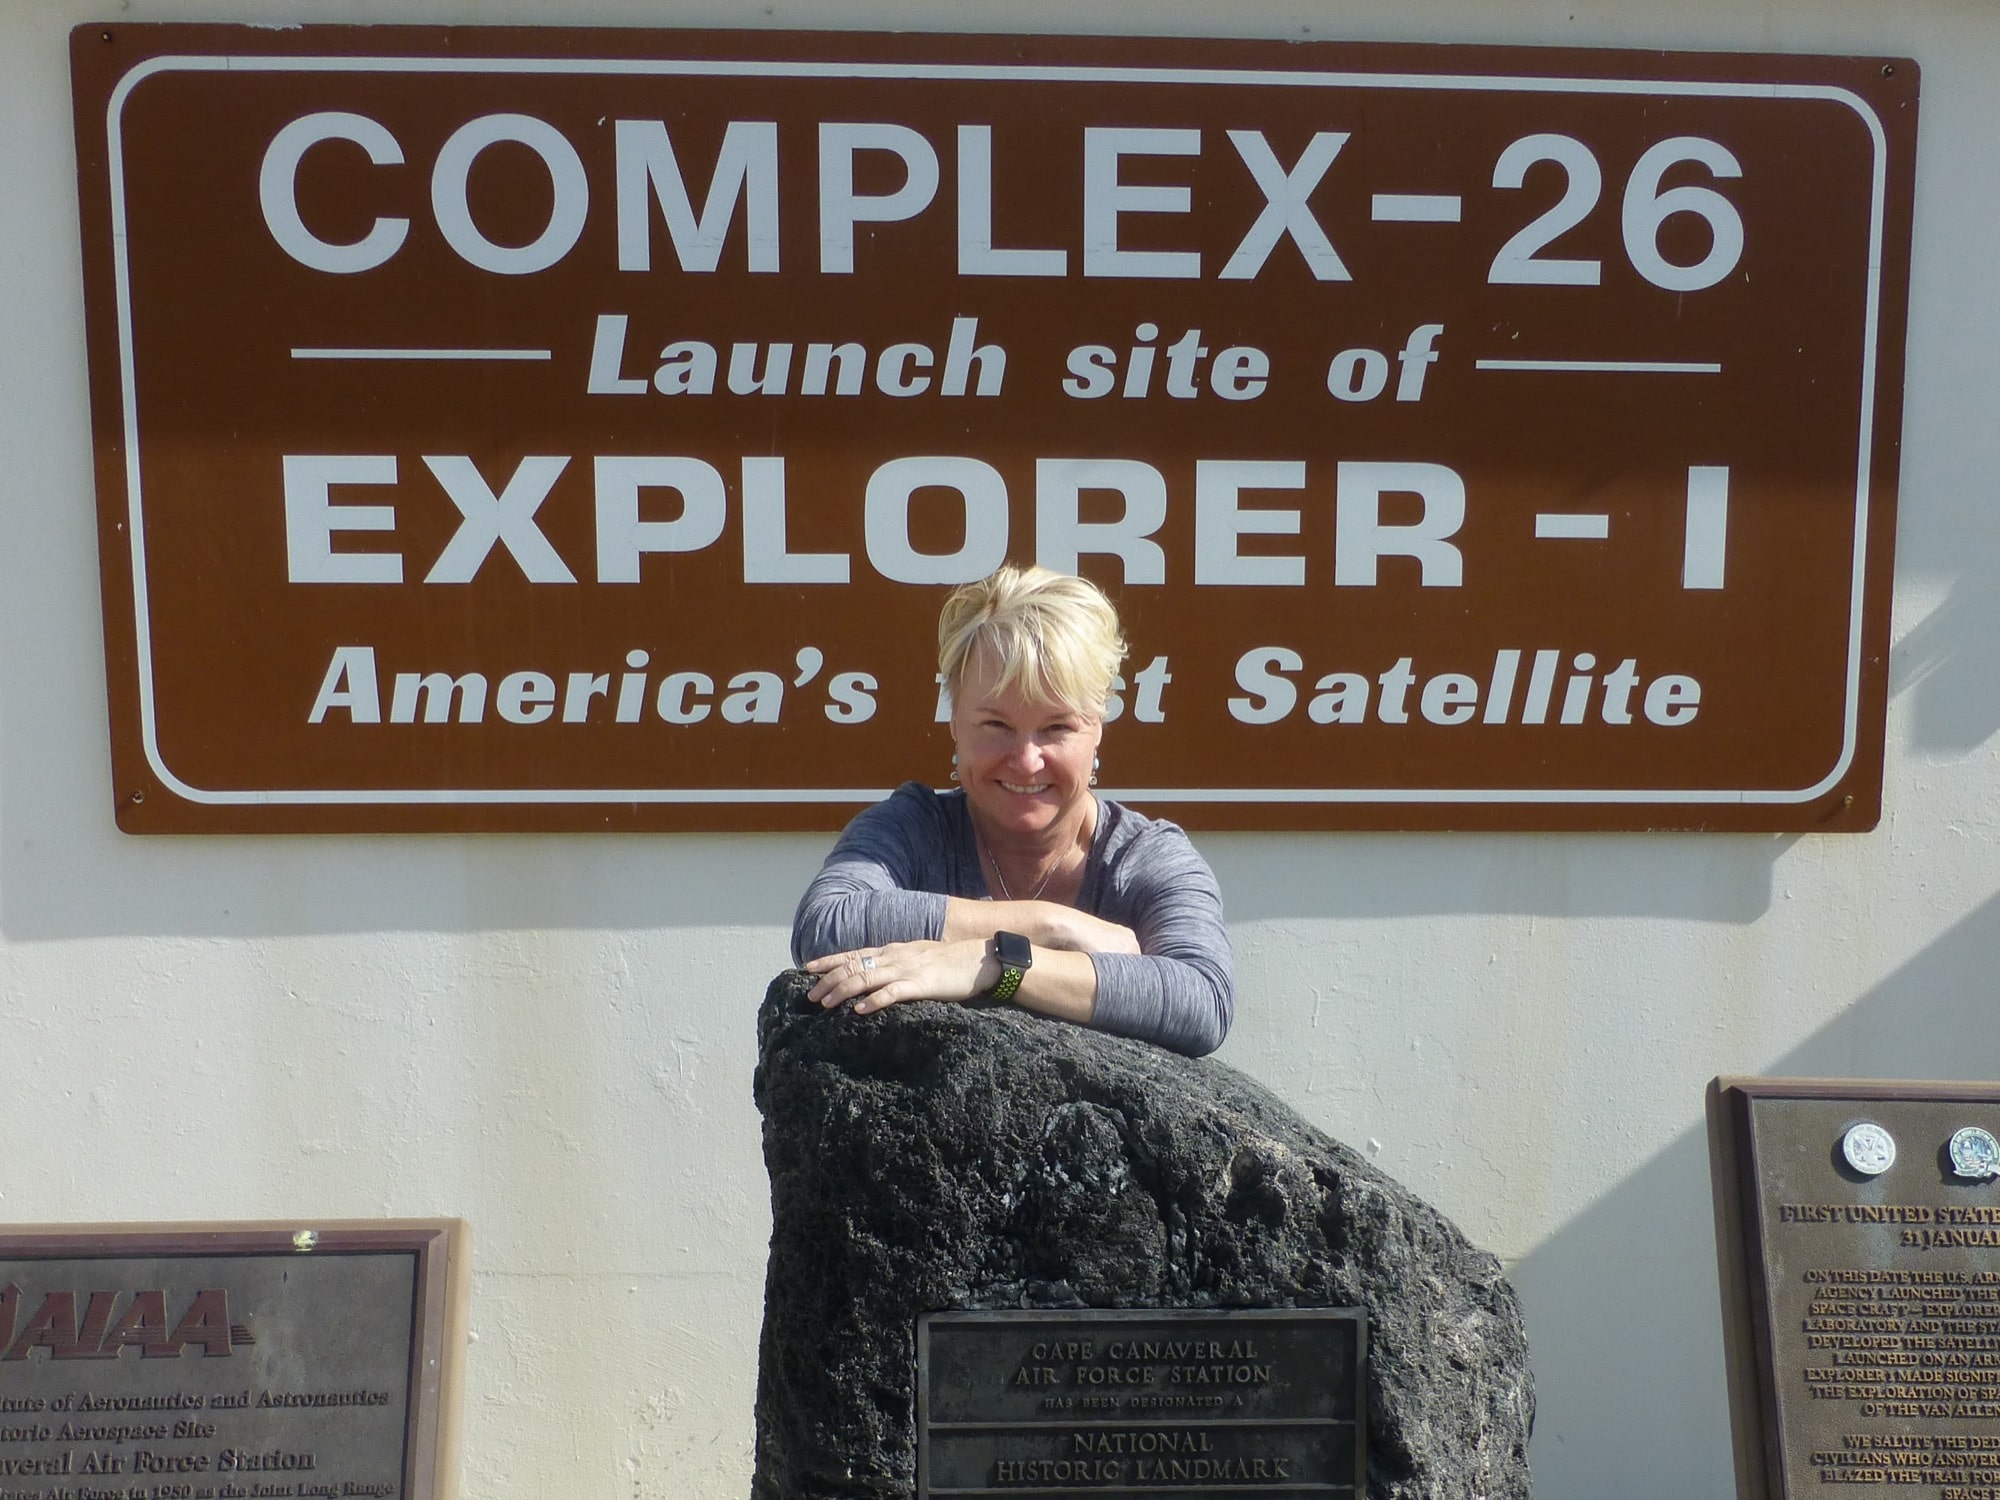 a woman stands in front of a sign that says 'complex-26 launch site of explorer - I America's first satellite